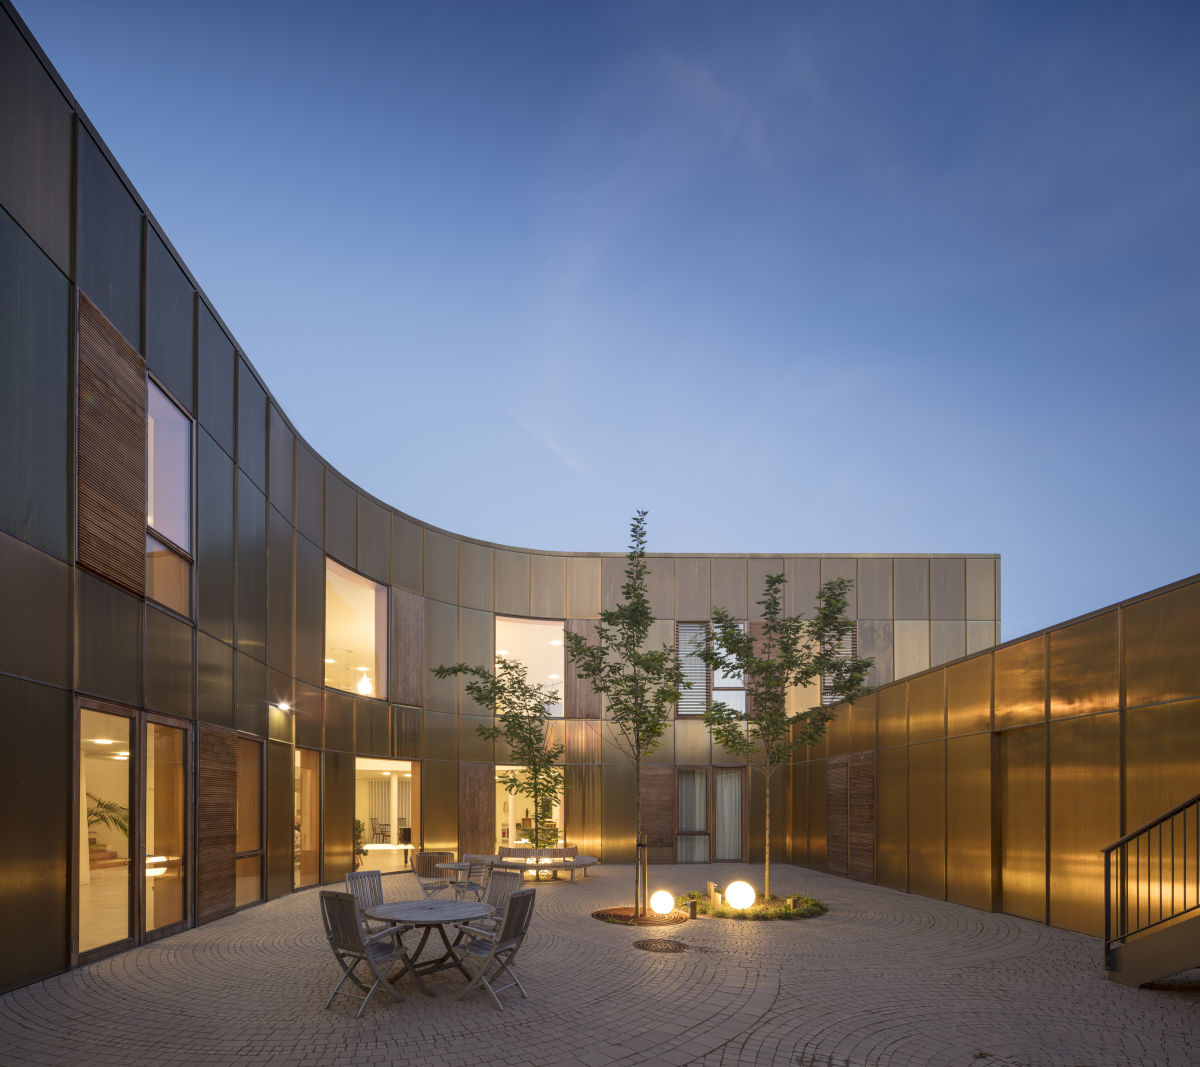 NORD Architects, Adam Mørk · Urban Hospice - a good place